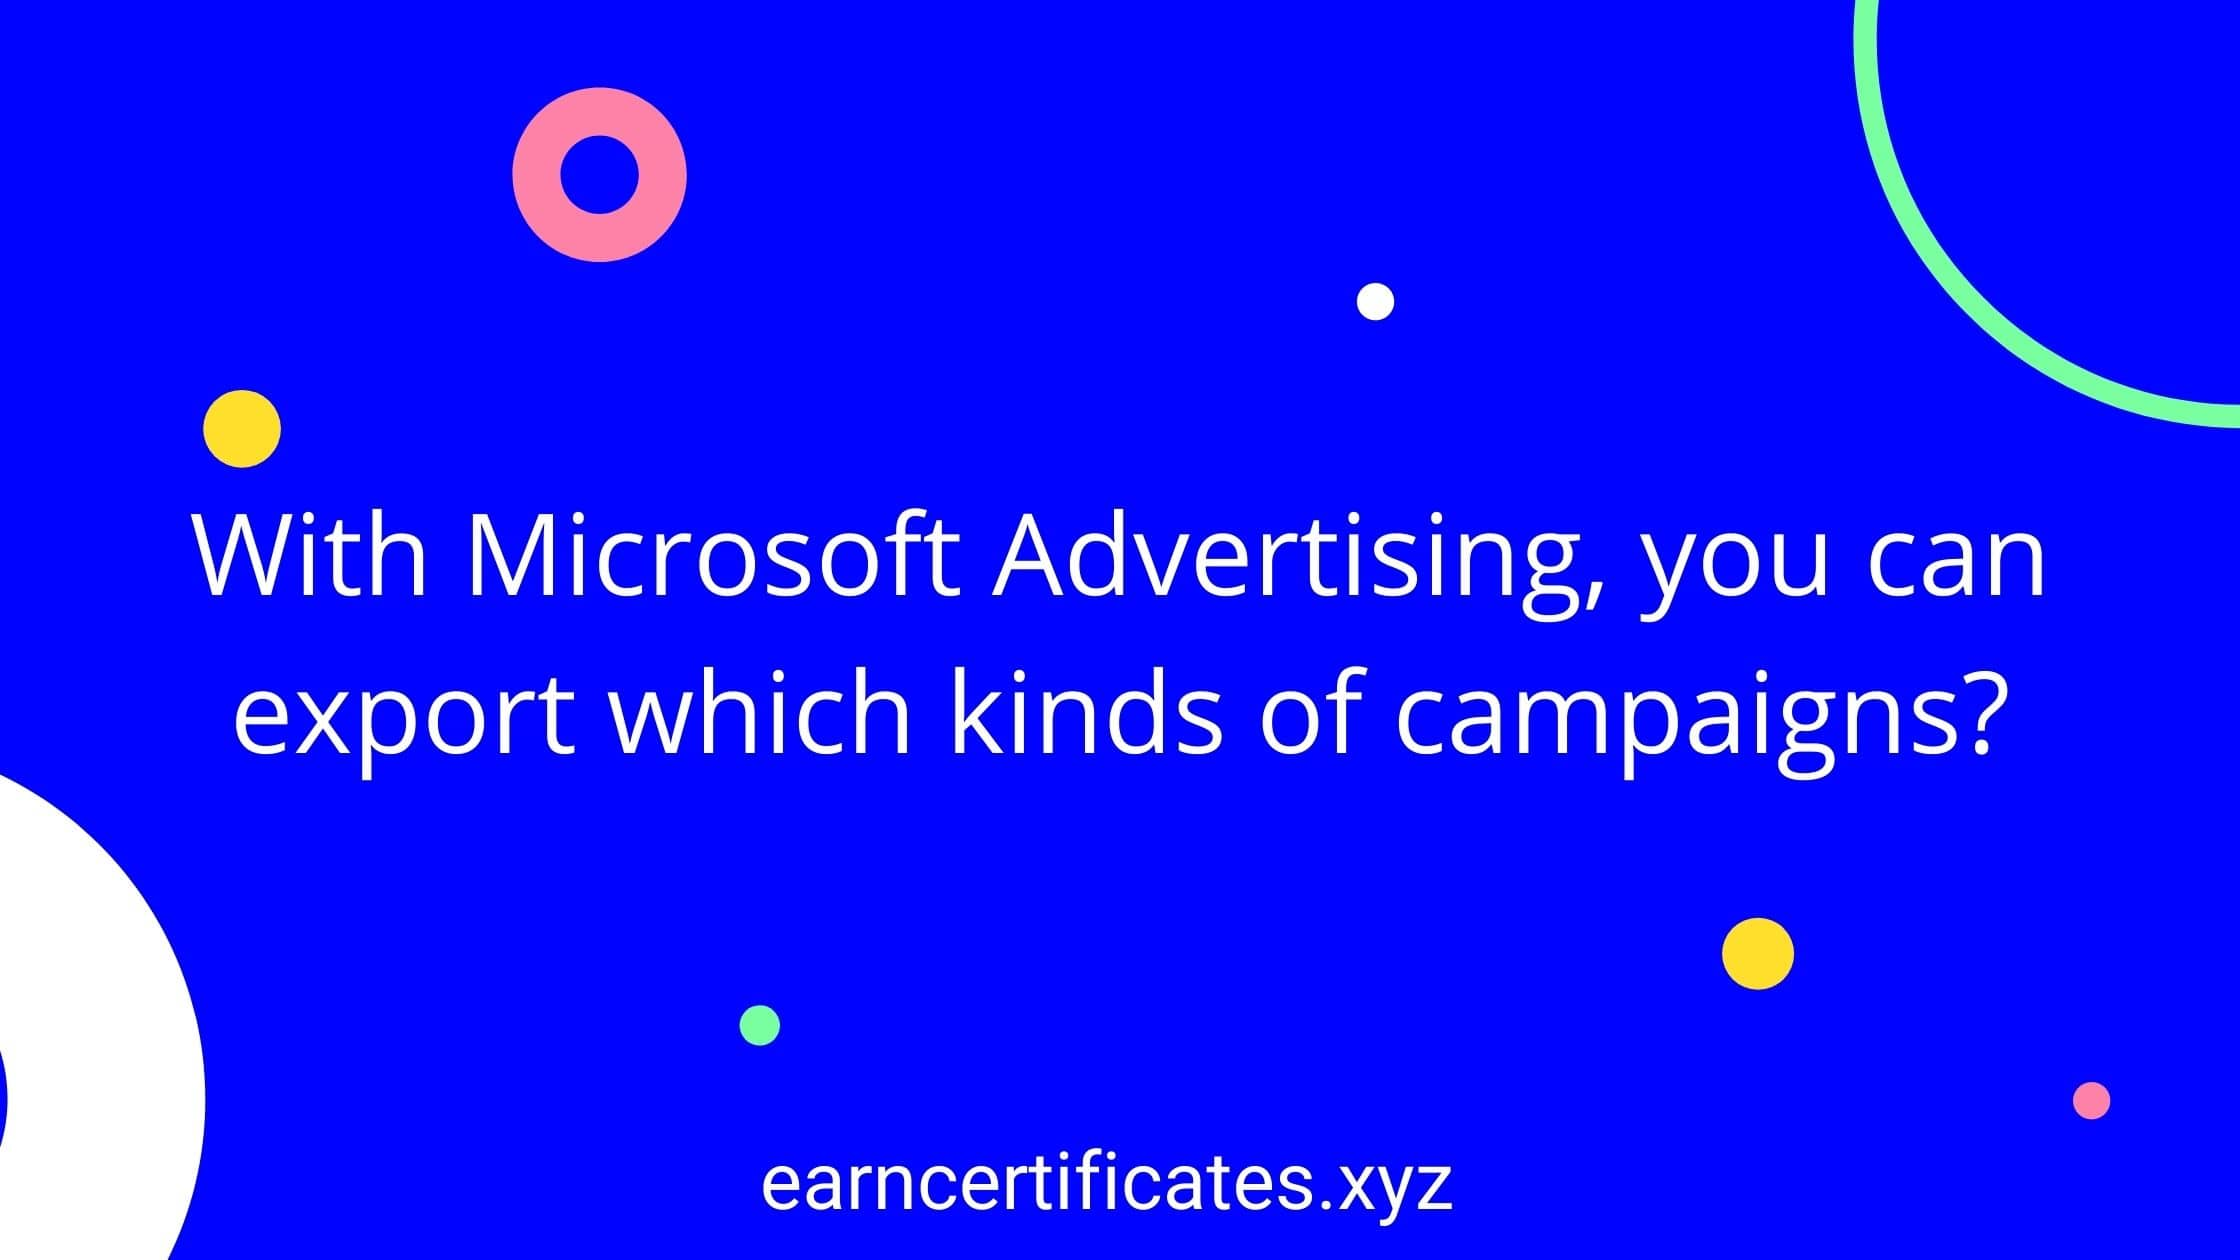 With Microsoft Advertising, you can export which kinds of campaigns?